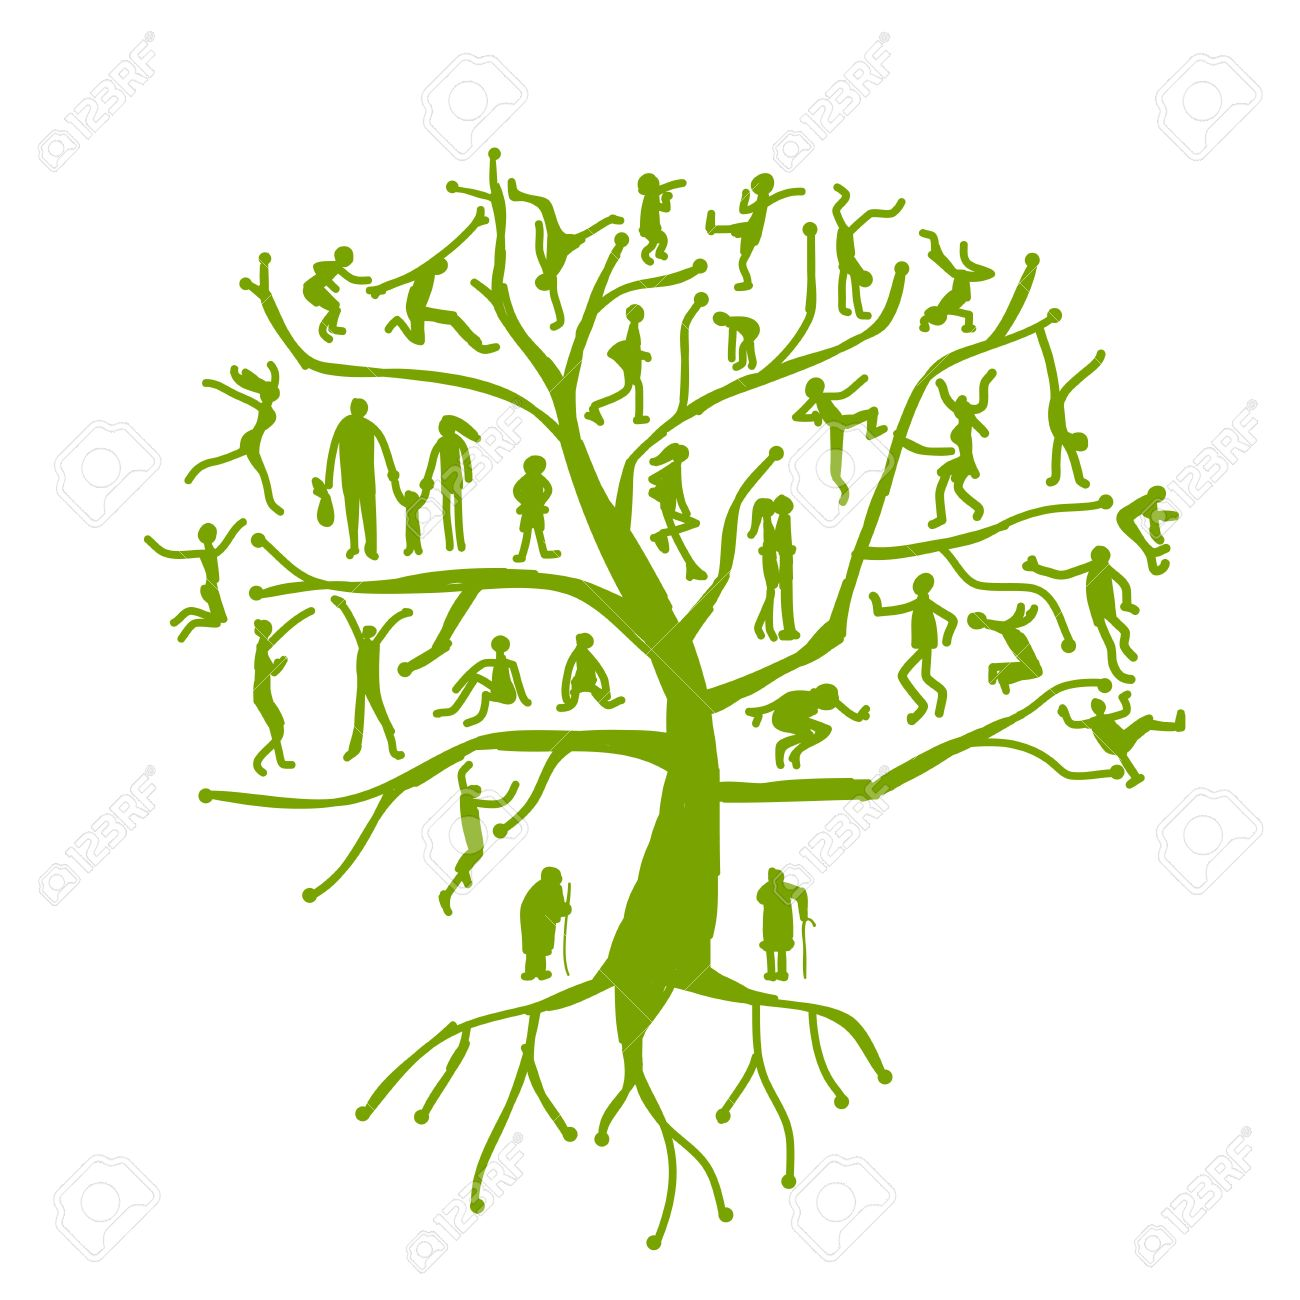 Family tree, relatives, people silhouettes Stock Vector - 19631325